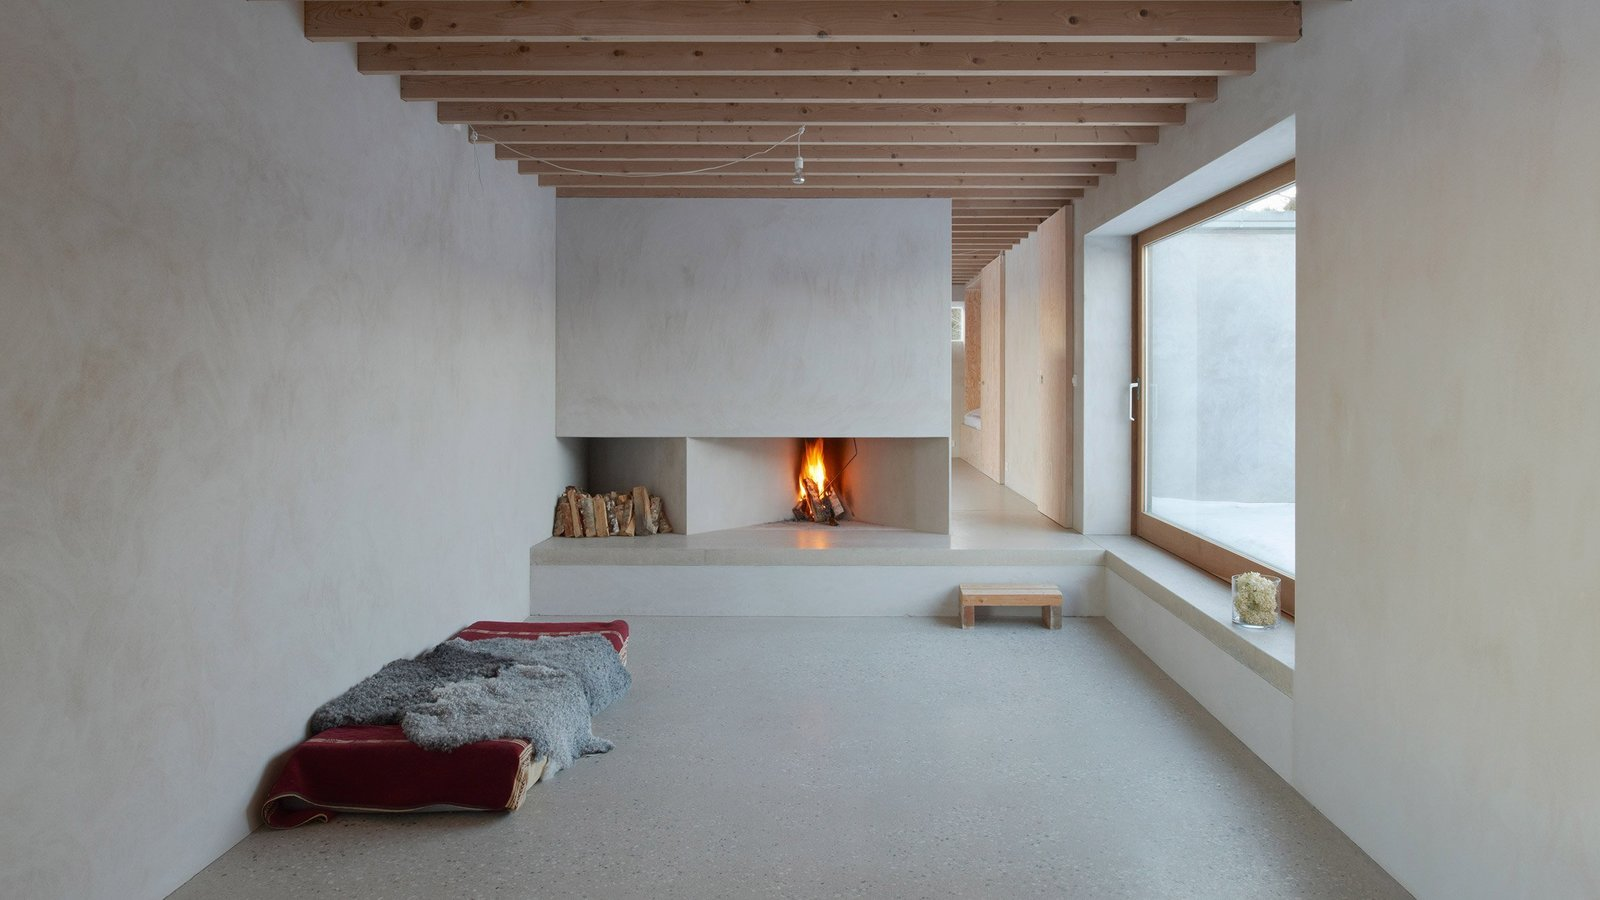 Living Room, Standard Layout Fireplace, Concrete Floor, and Wood Burning Fireplace  Photo 5 of 7 in 7 Tips For Creating Your Own Home Meditation Zone